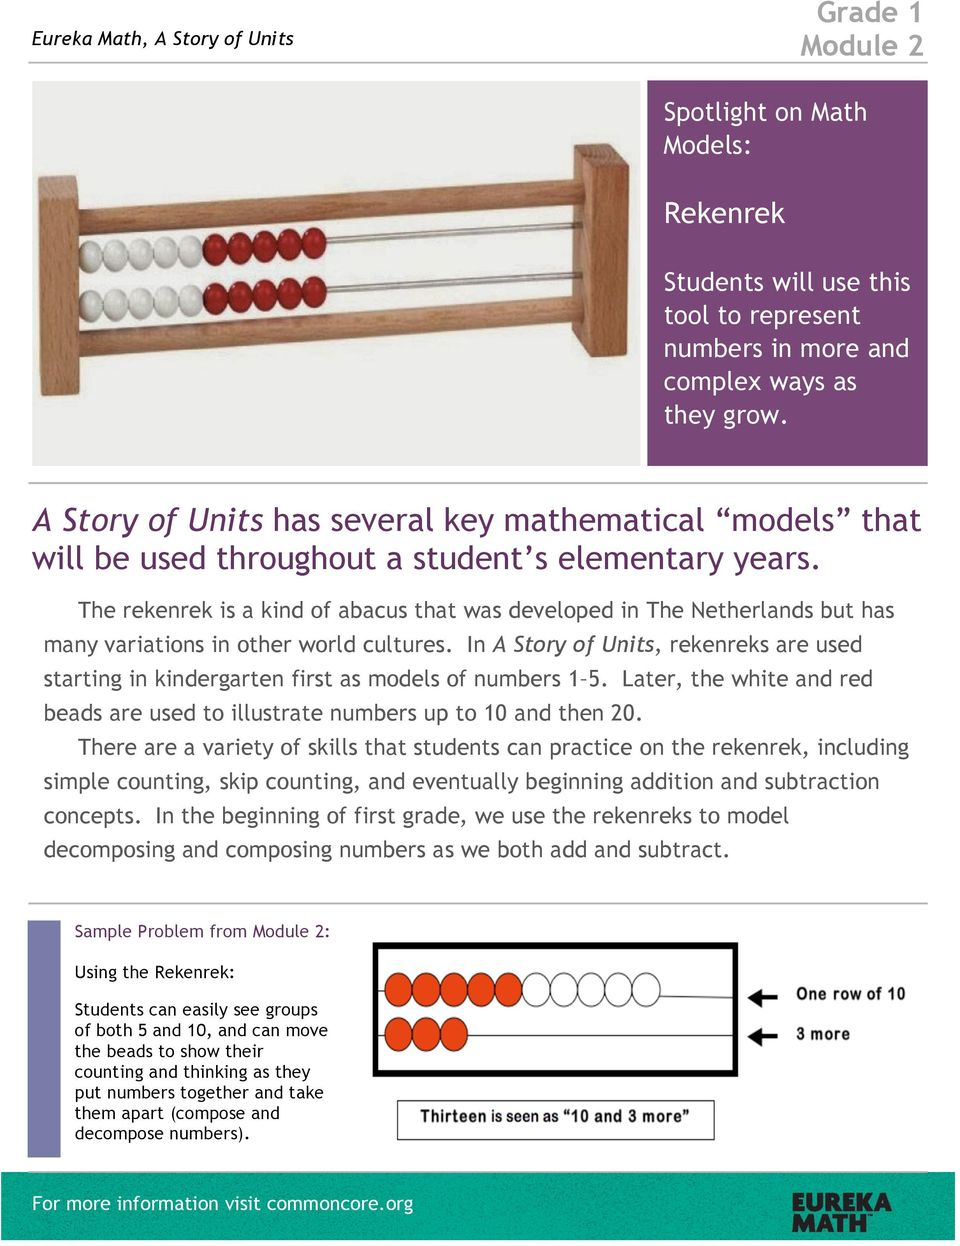 The rekenrek is a kind of abacus that was developed in The Netherlands but has many variations in other world cultures.